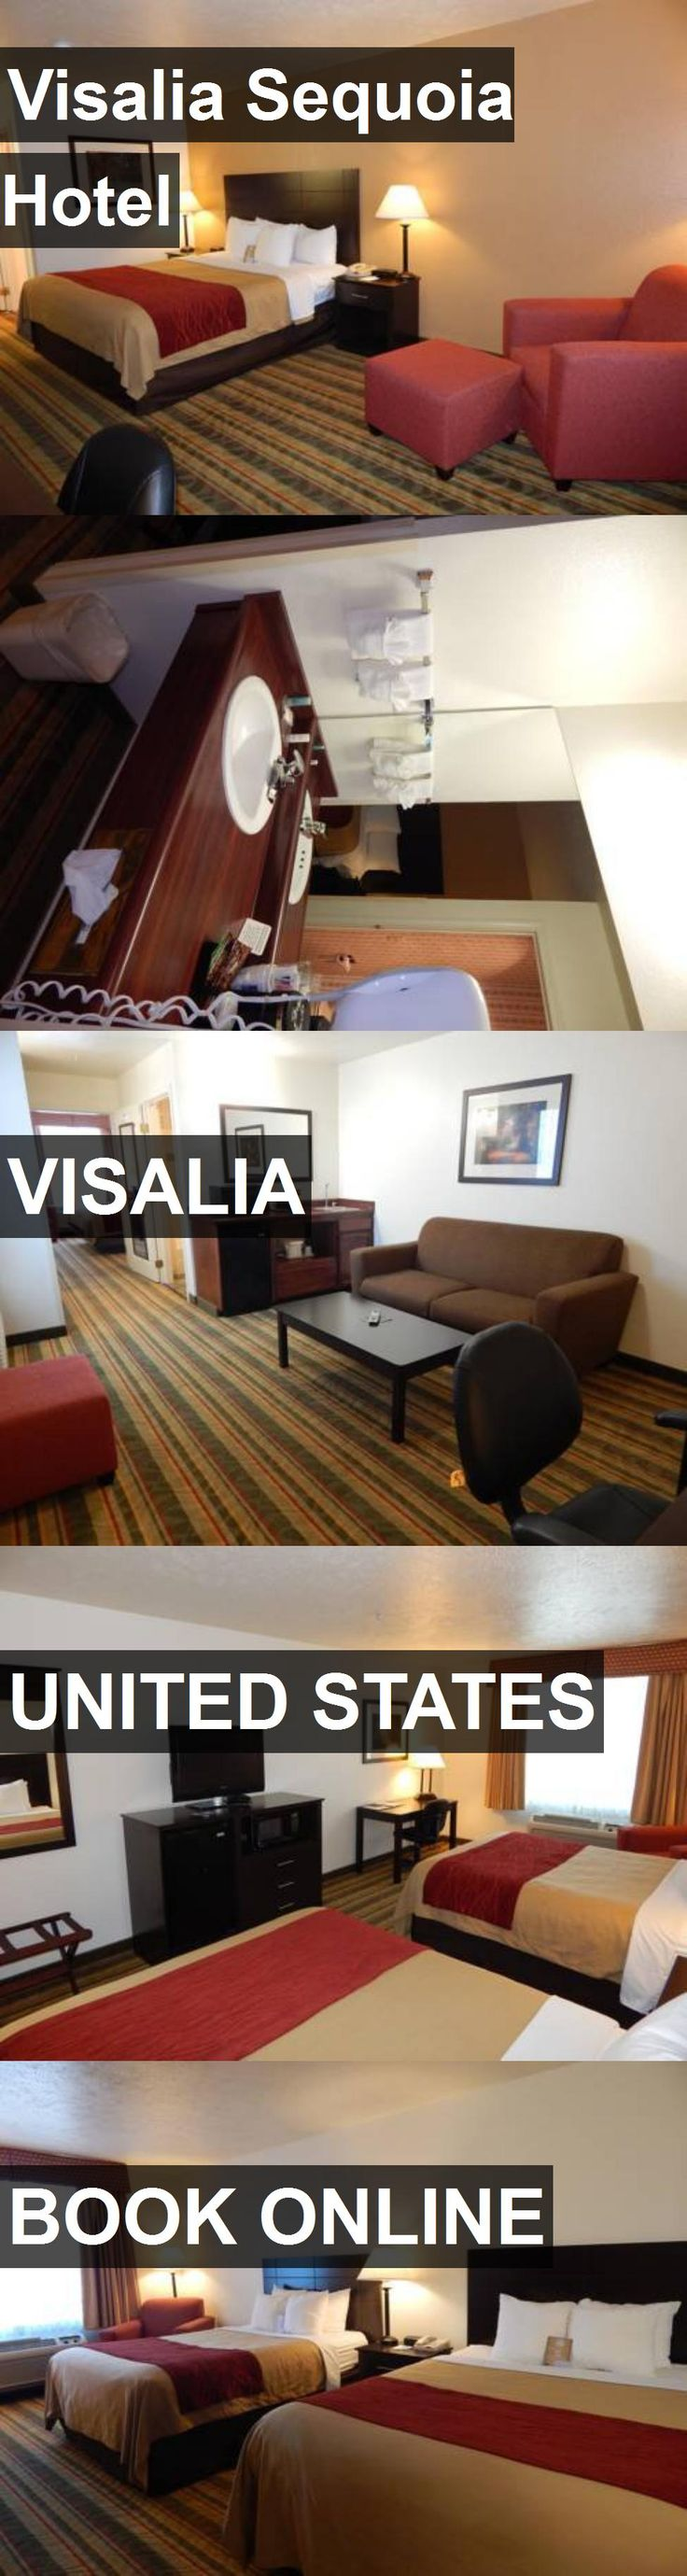 Visalia Sequoia Hotel in Visalia, United States. For more information, photos, reviews and best prices please follow the link. #UnitedStates #Visalia #travel #vacation #hotel